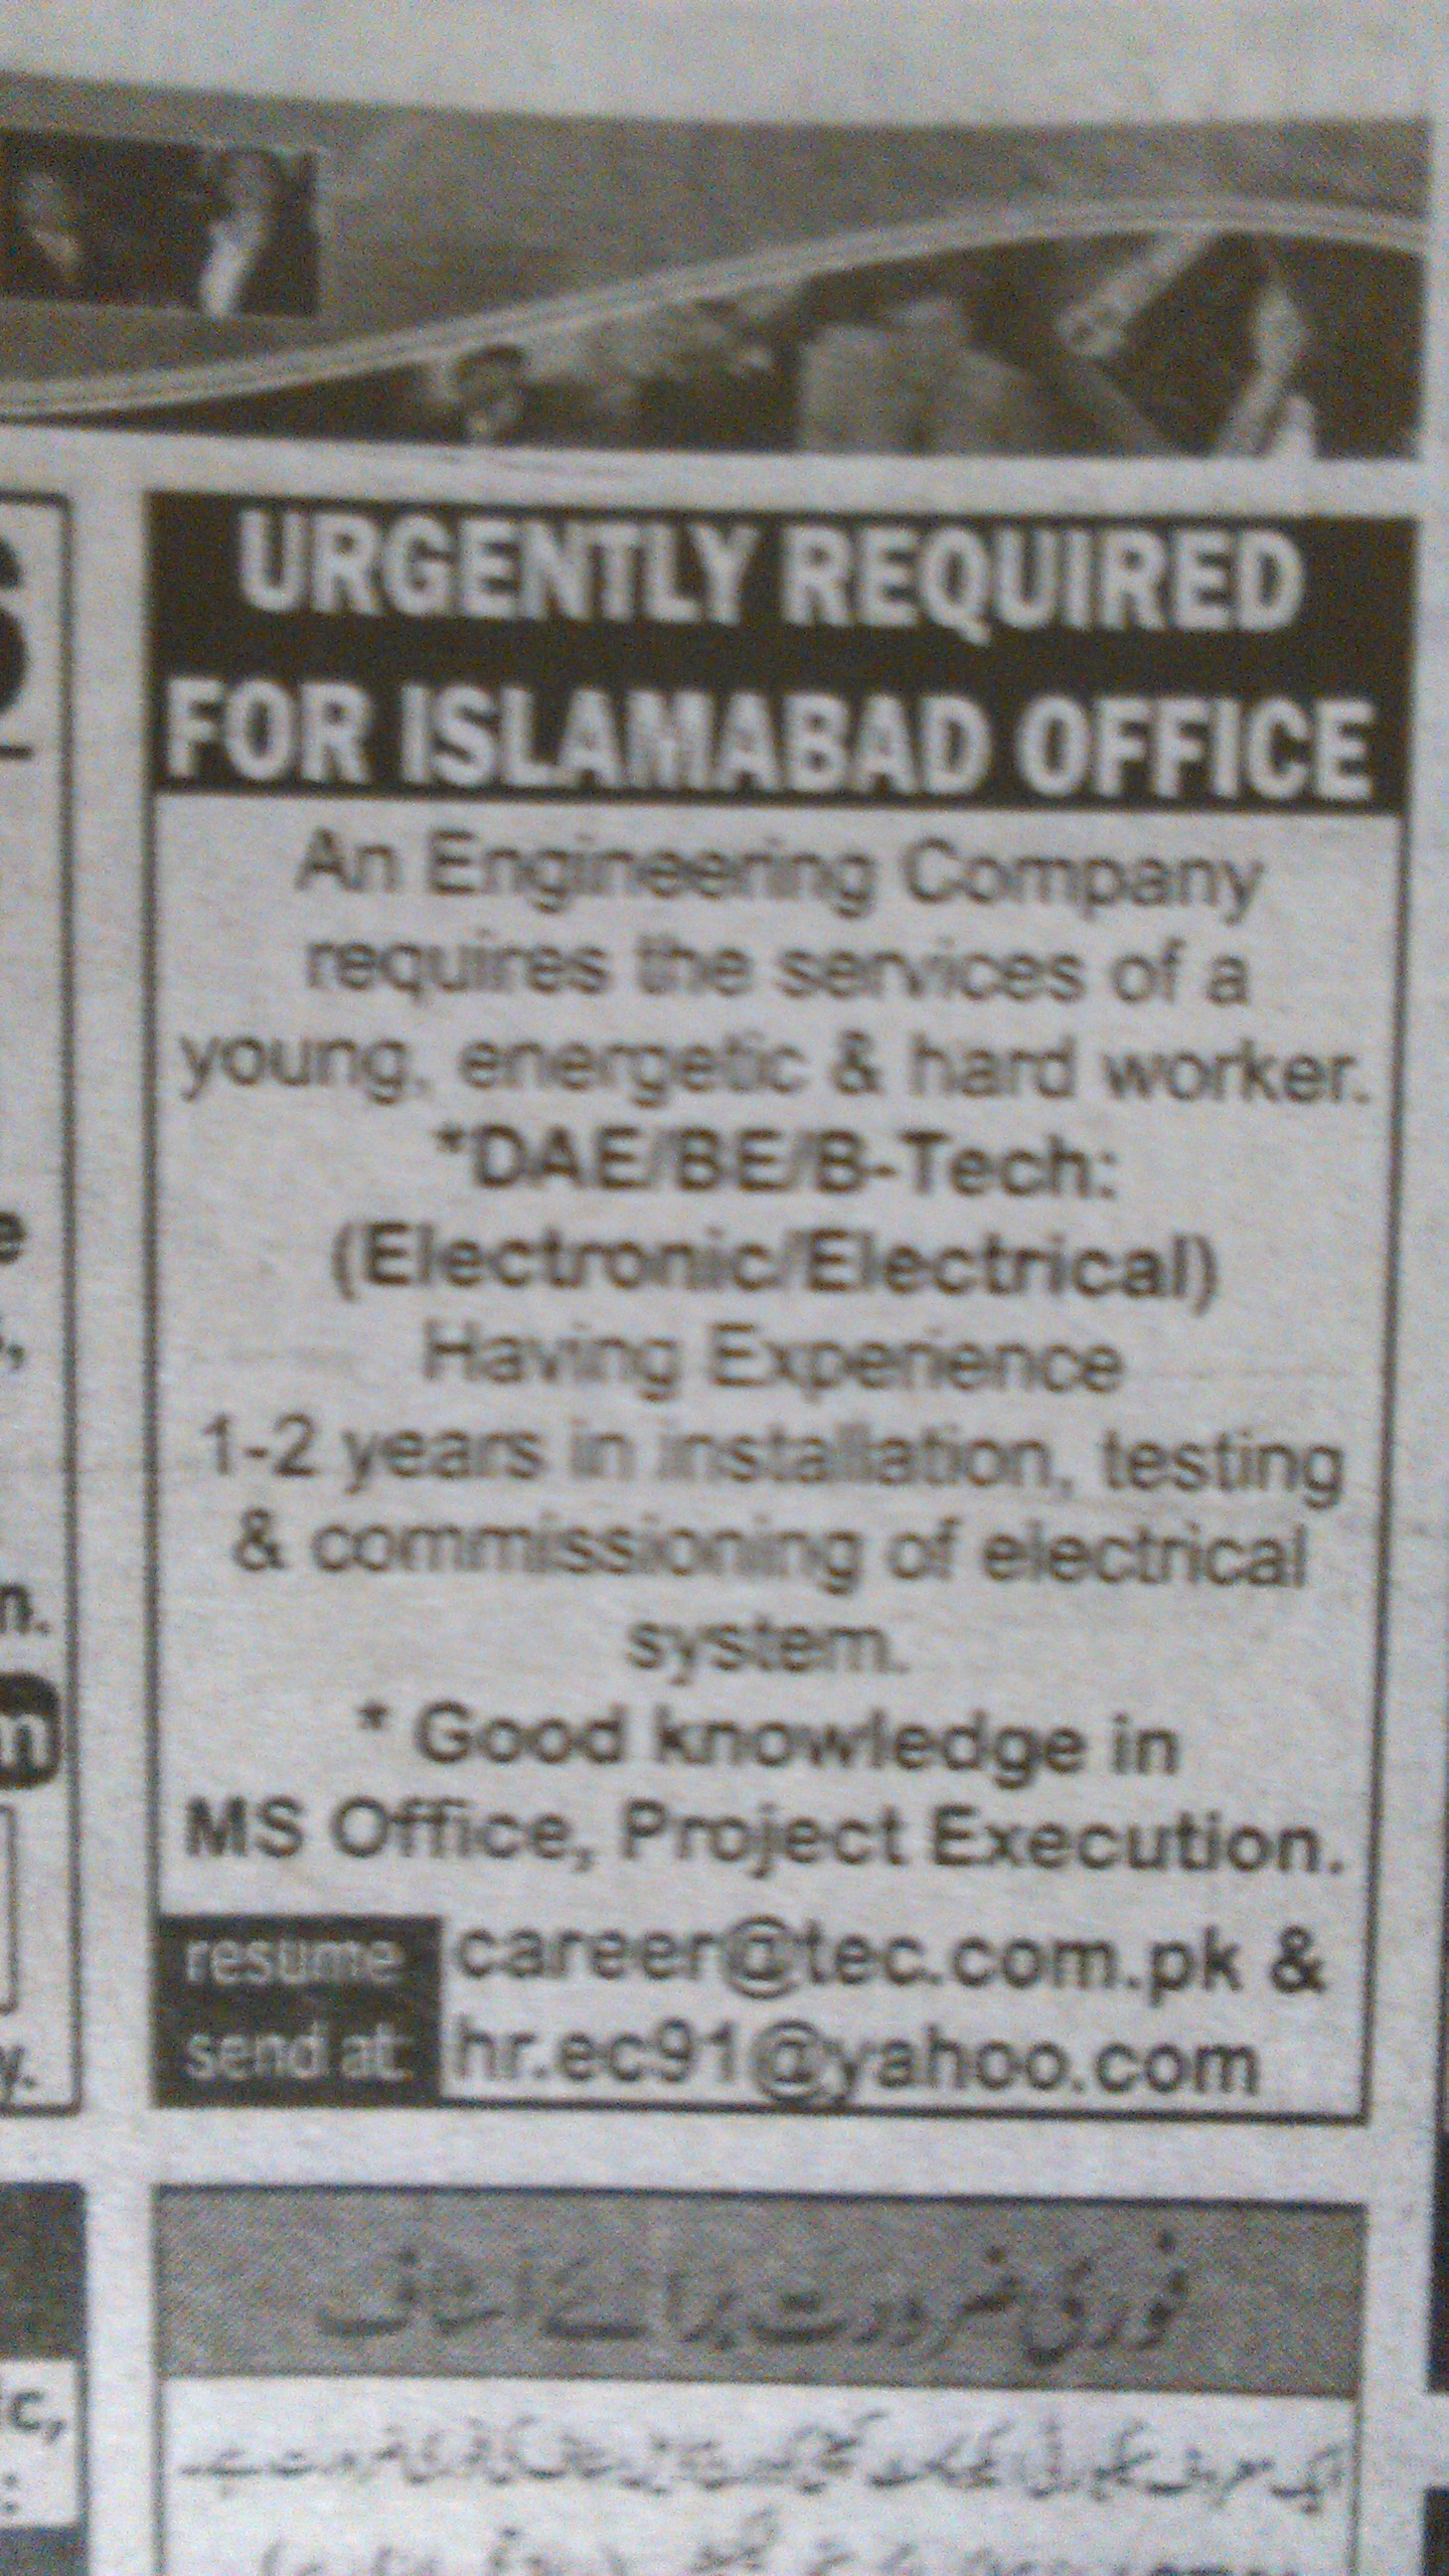 Technical Resource Urgently Required for Islamabad